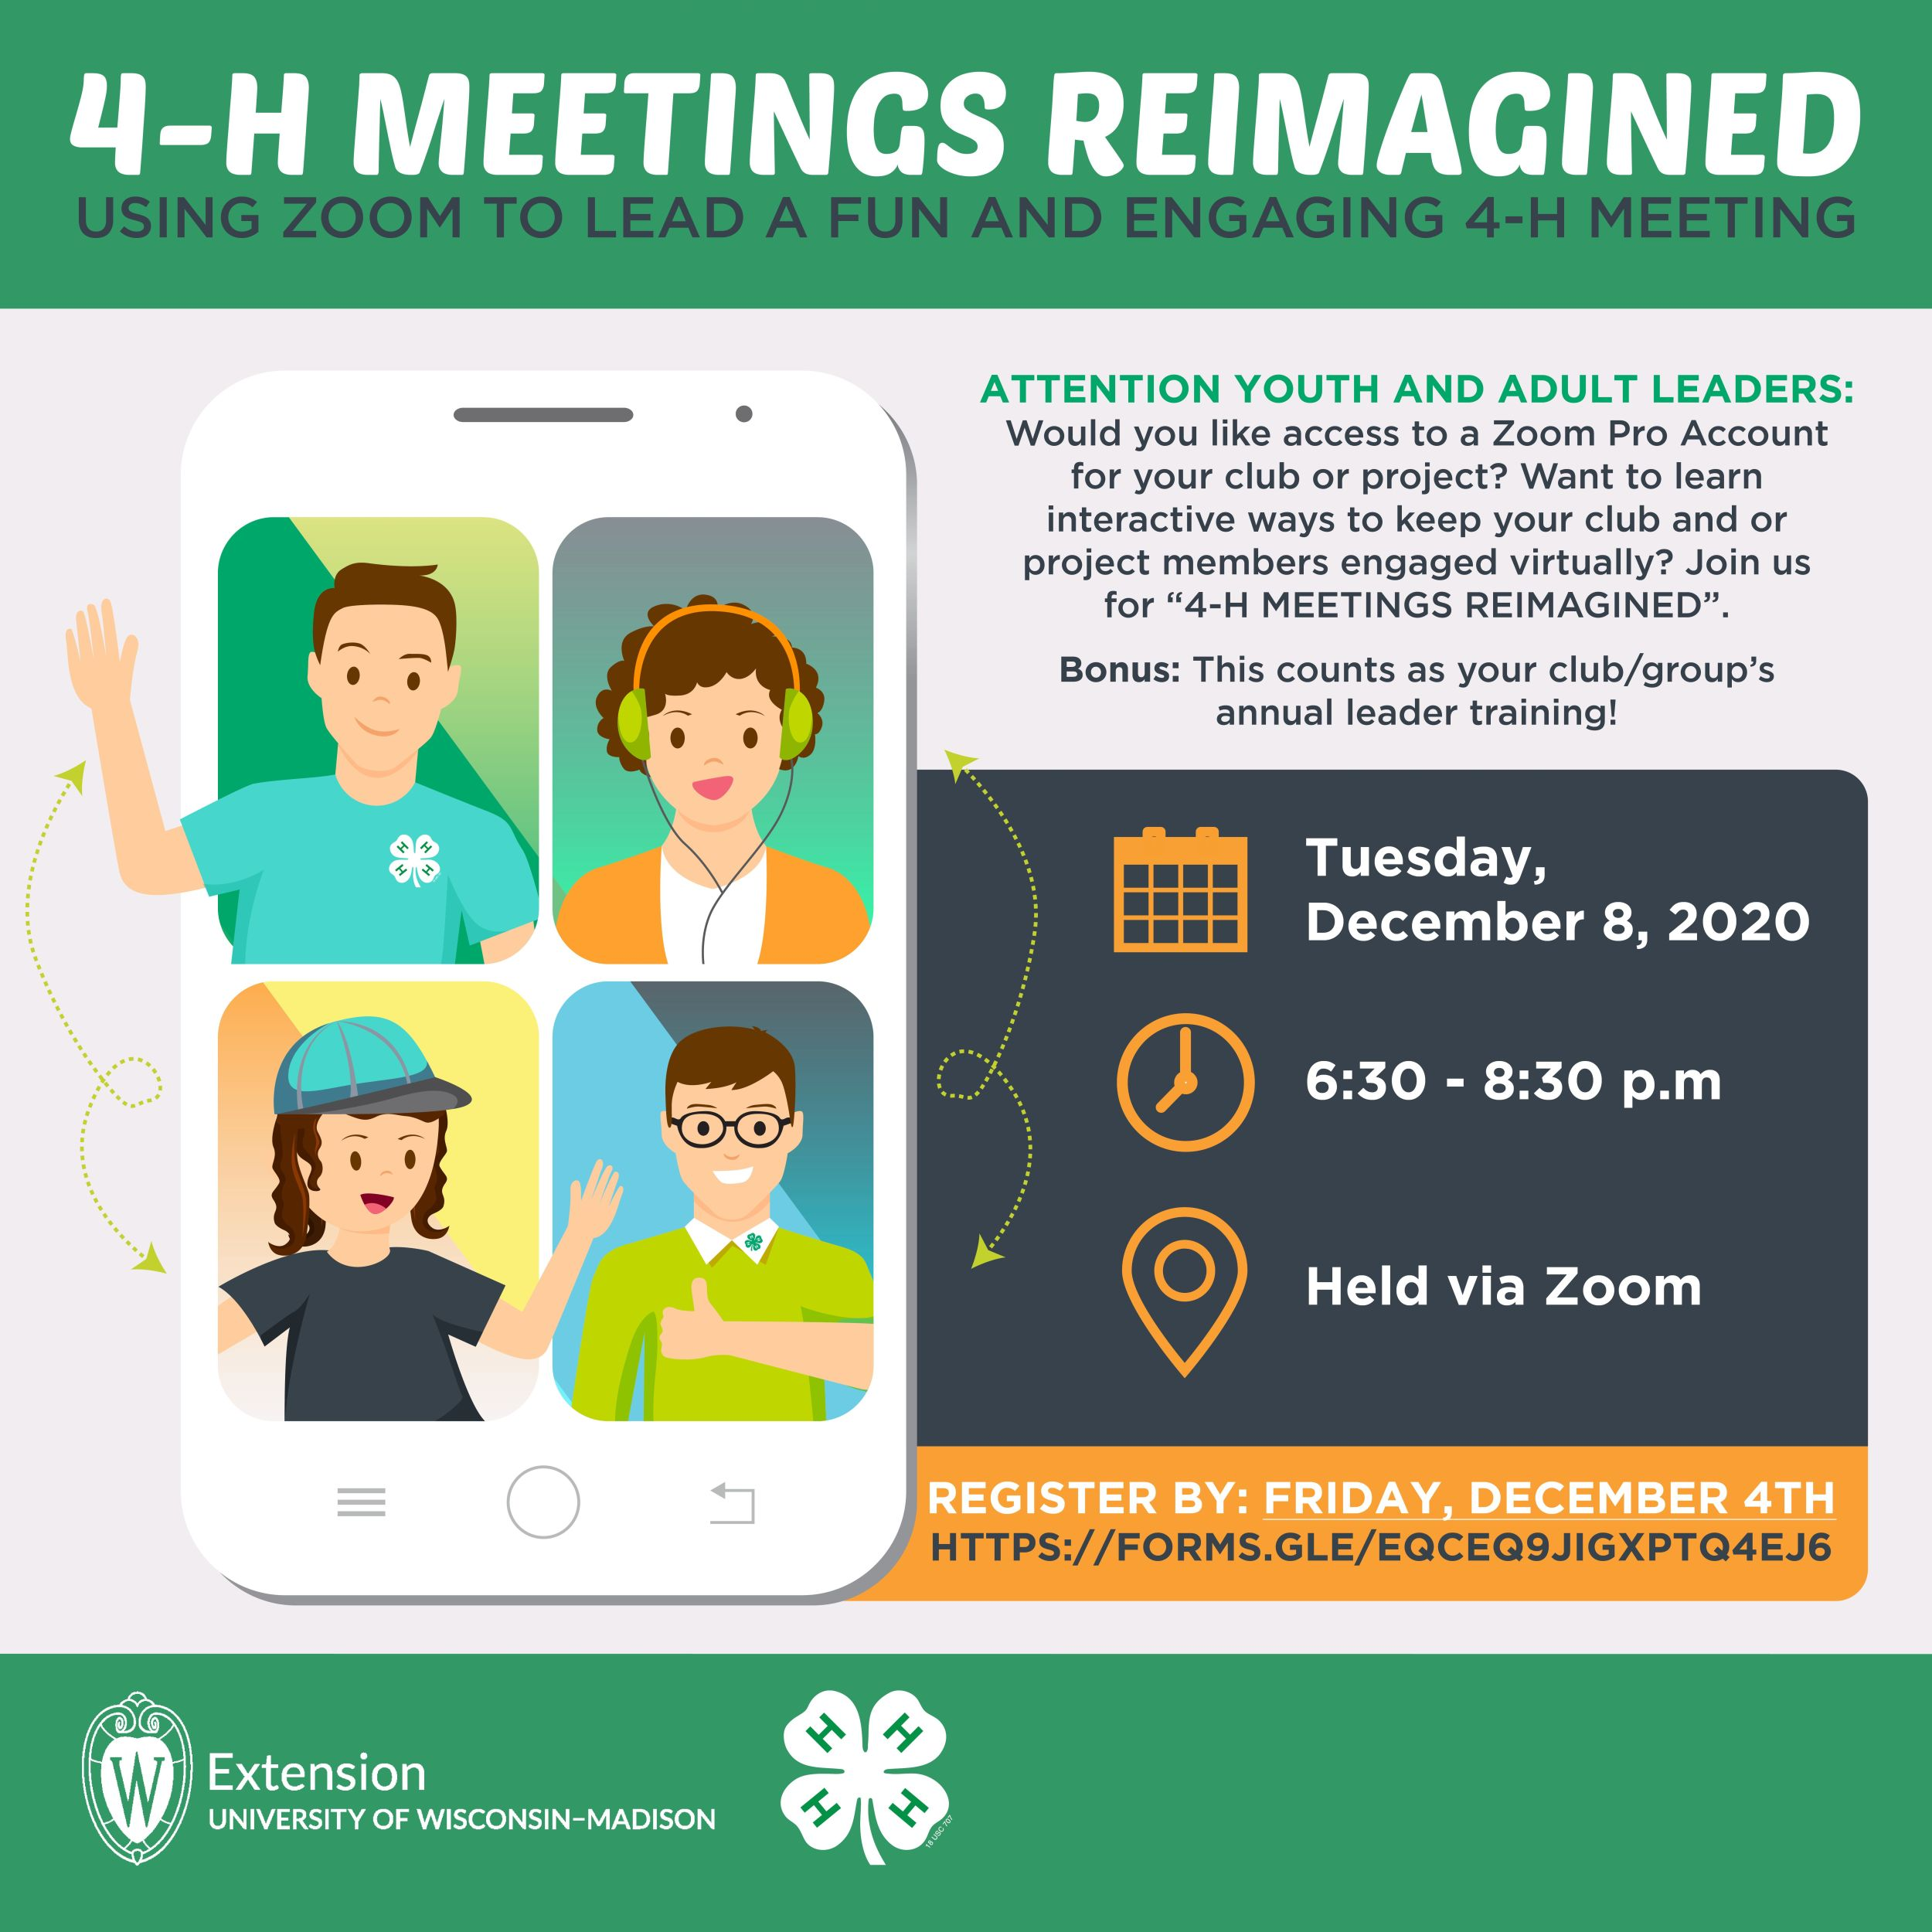 4-H Meetings Reimagined: Tuesday, Dec 8, 2020 at 6:30pm